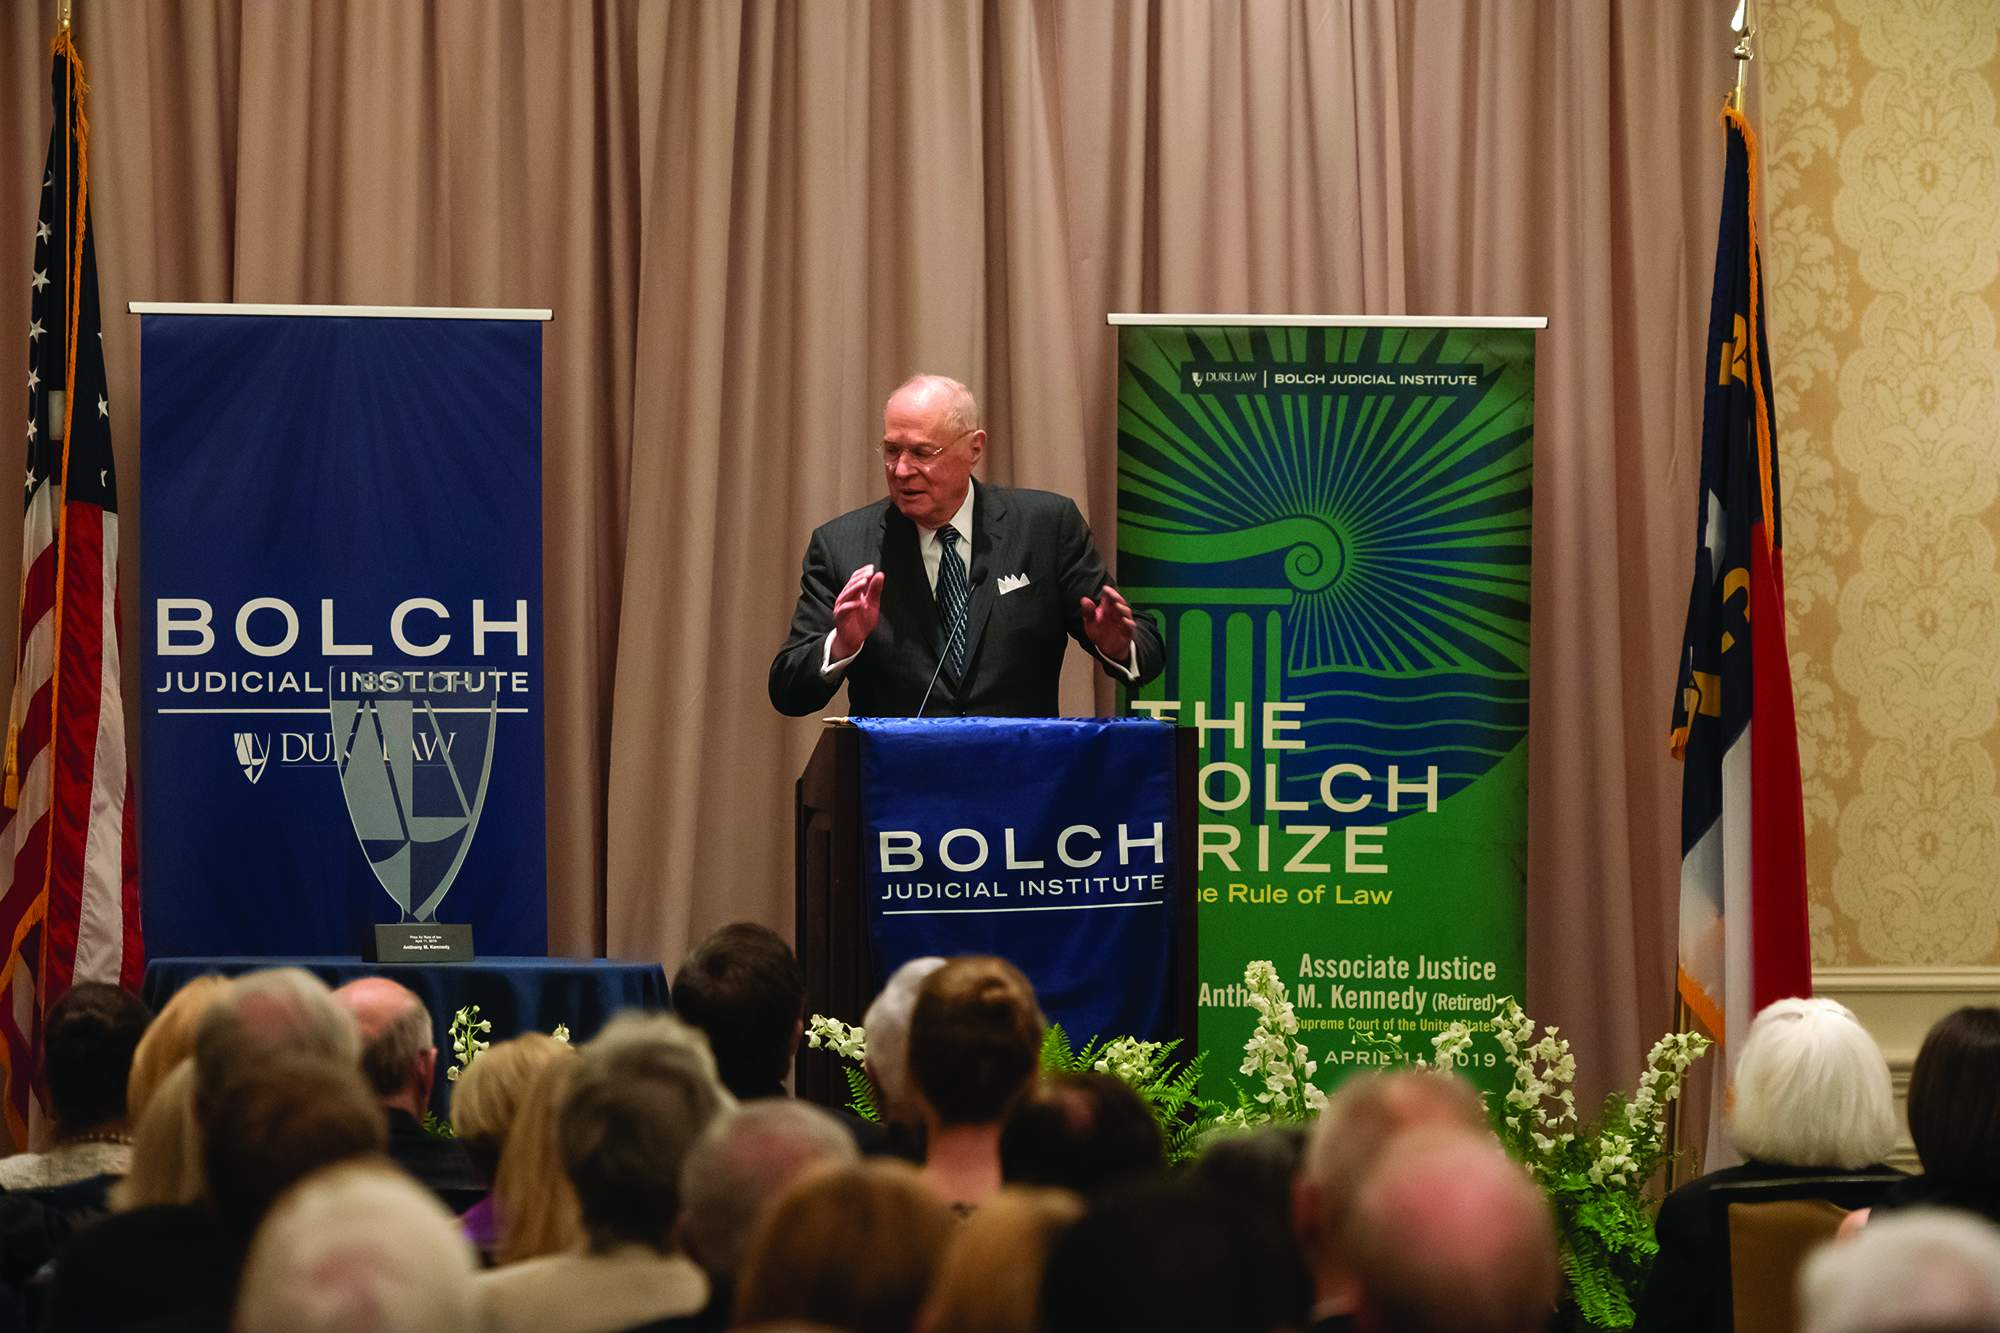 Justice Kennedy speaking at 2019 Bolch Prize ceremony